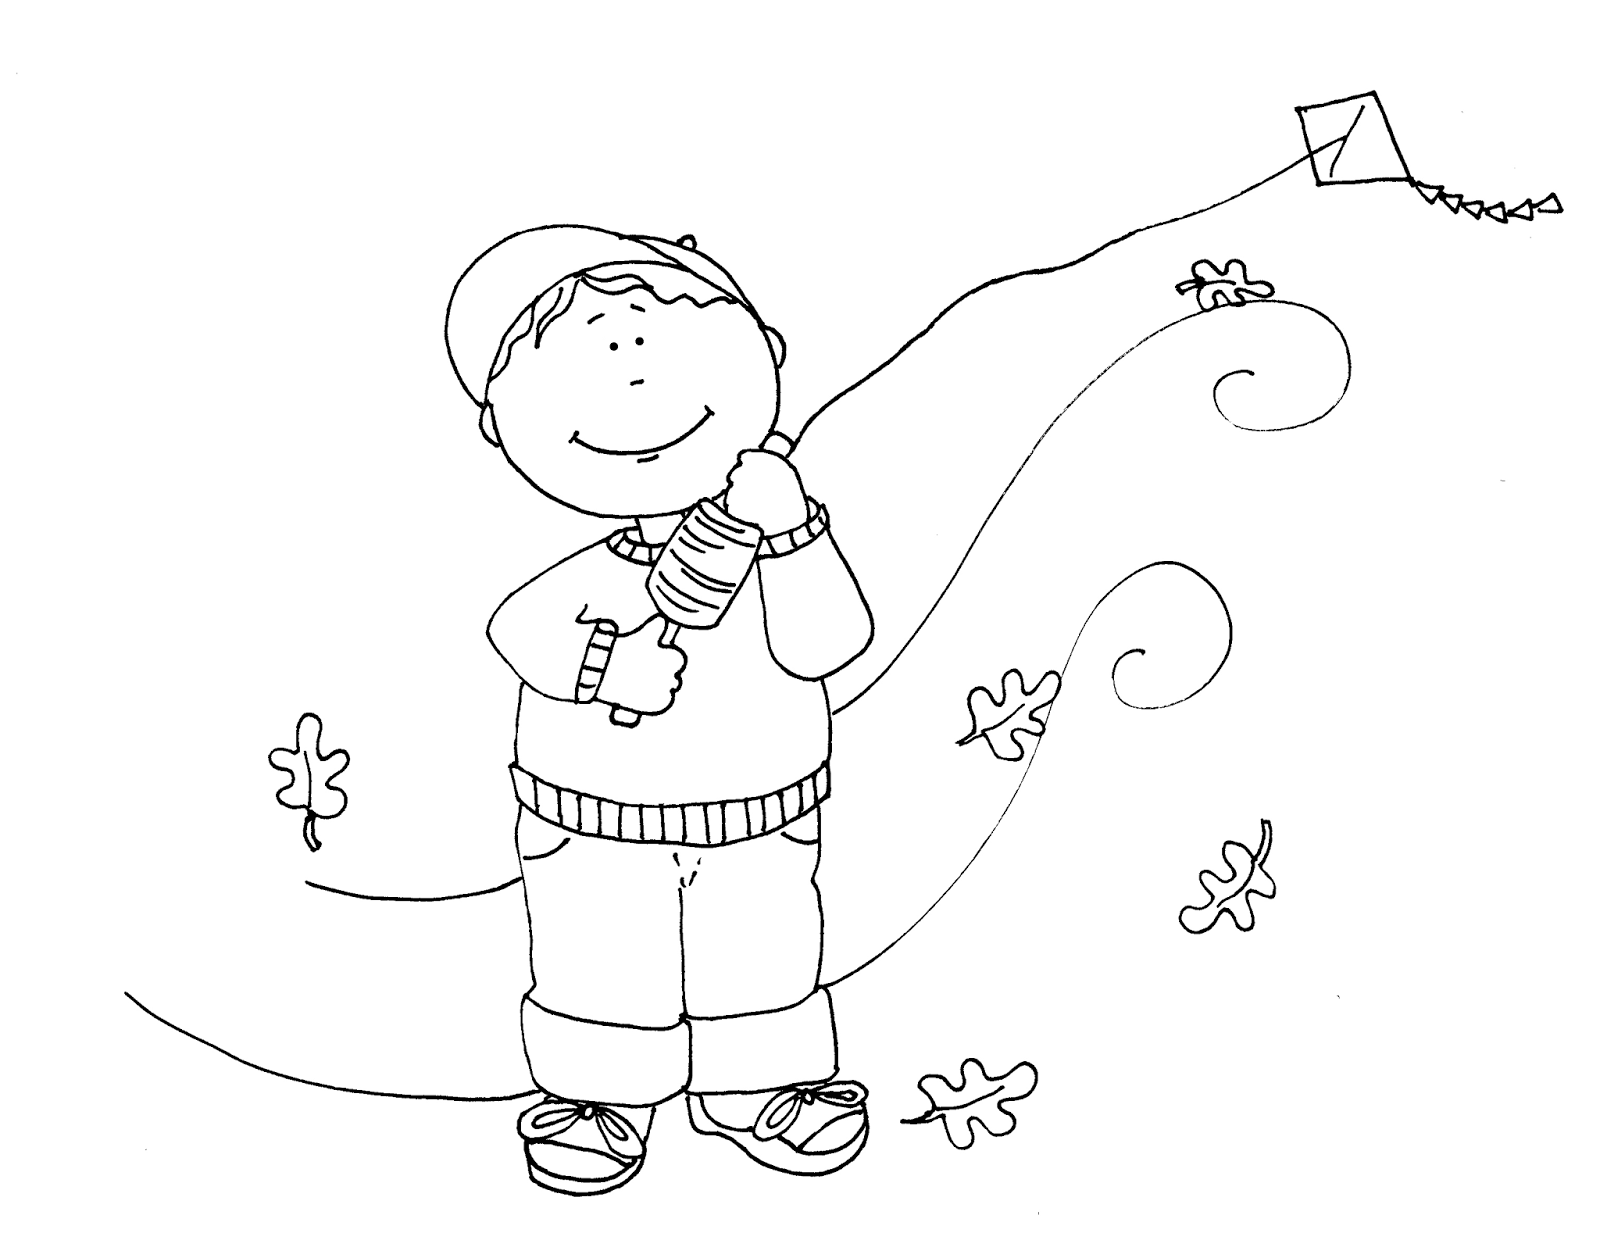 Free Dearie Dolls Digi Stamps Kite Flying Autumn Boy